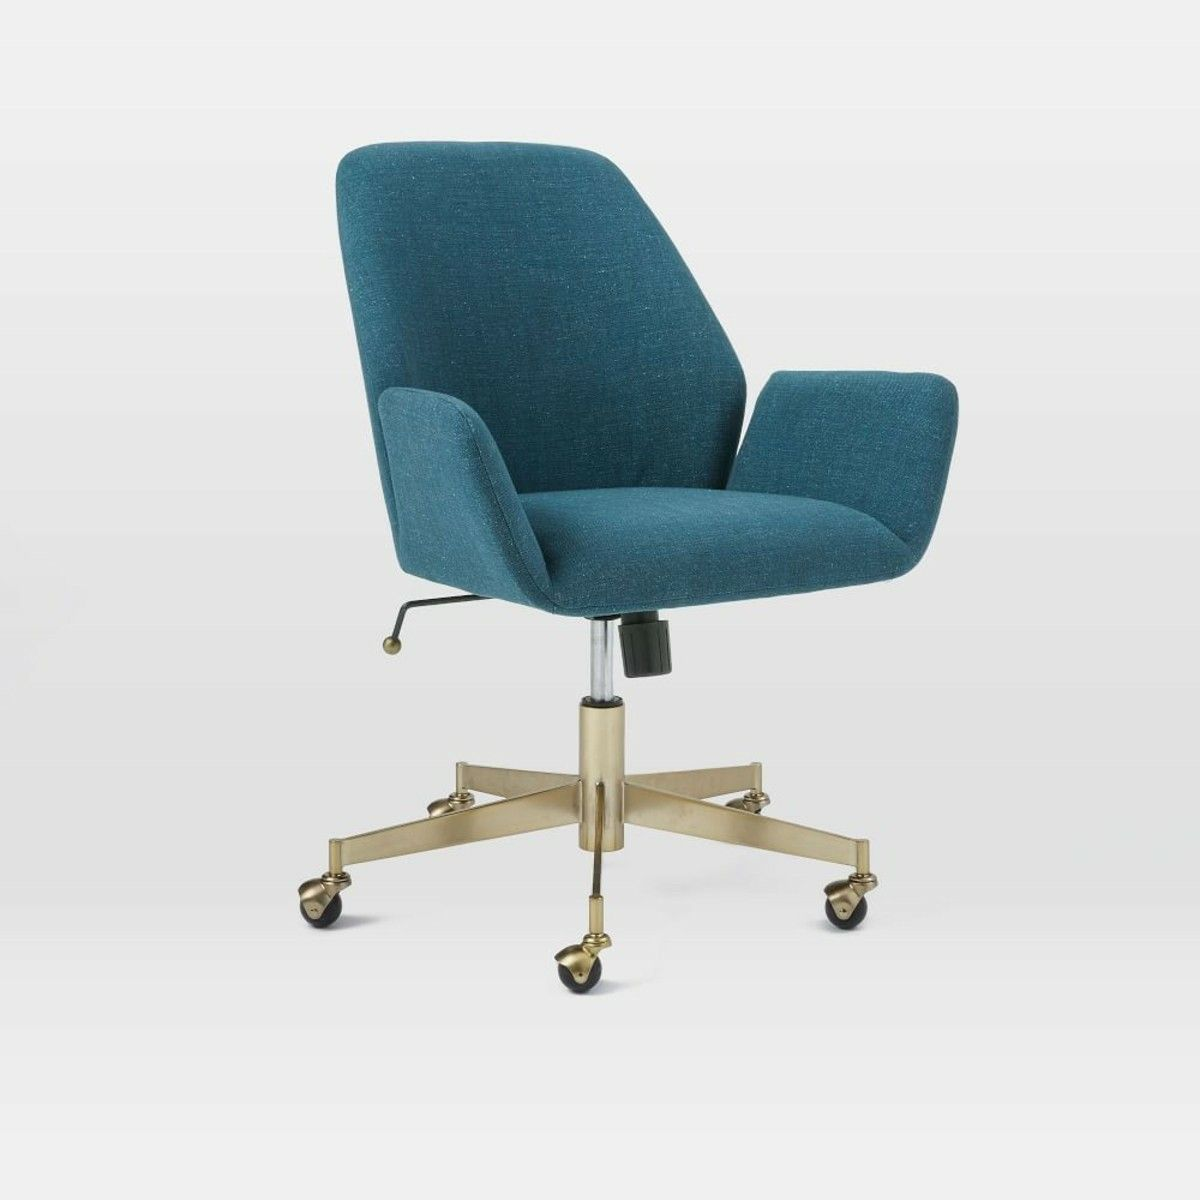 office chair upholstery. Aluna Upholstered Office Chair Upholstery F